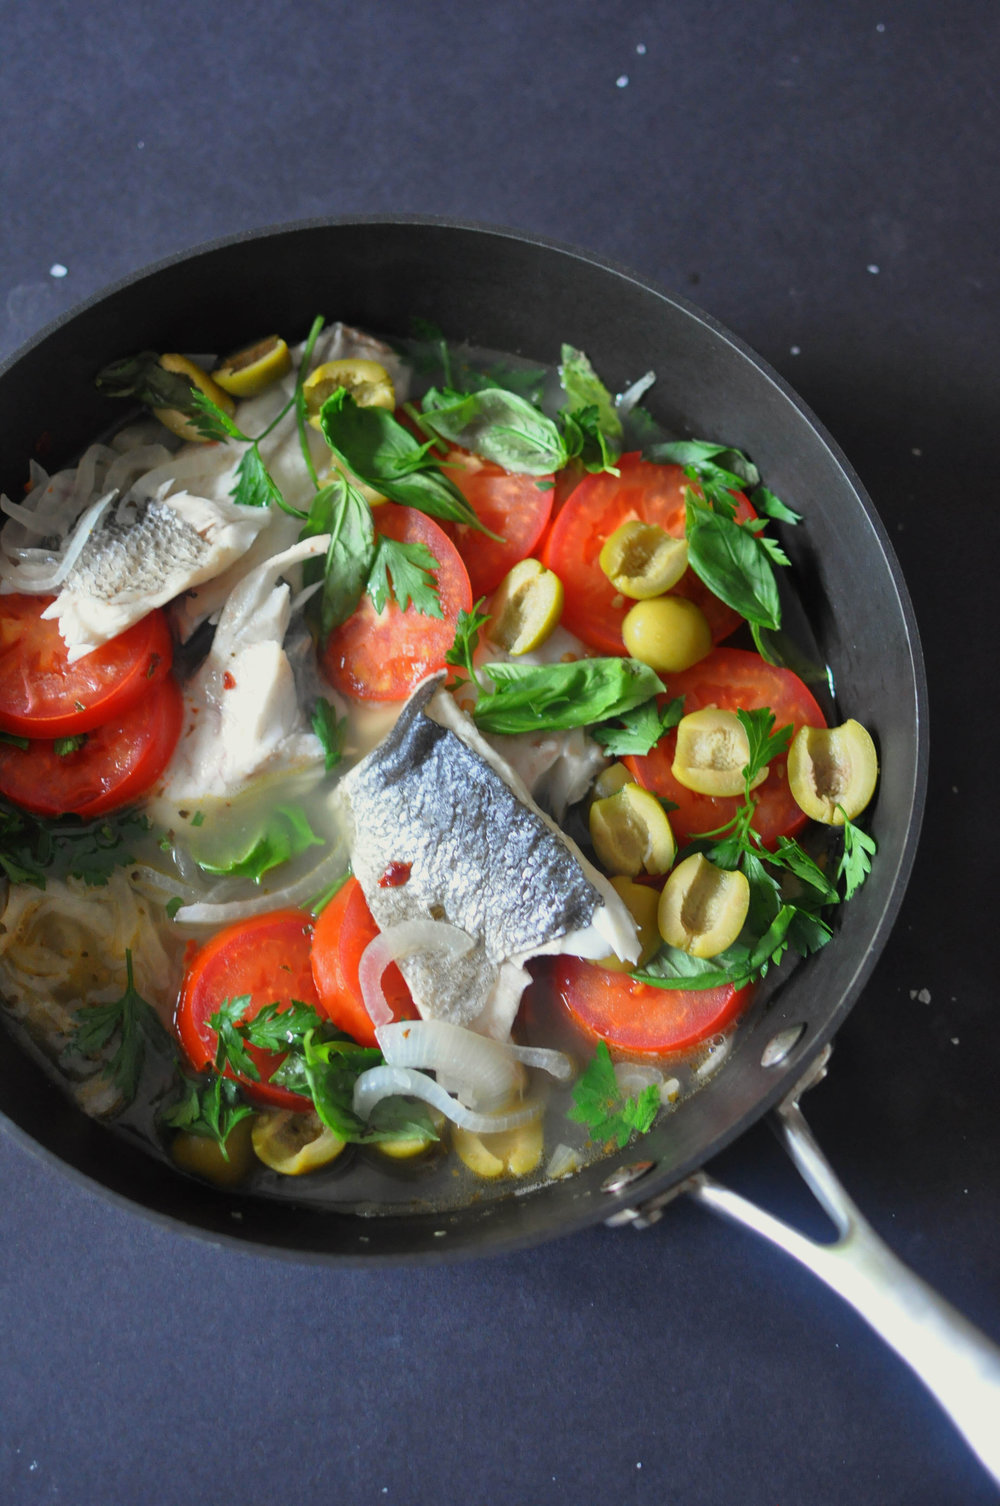 Poached sea bass recipe with tomatoes, olives, and onions | Shiny Happy Bright